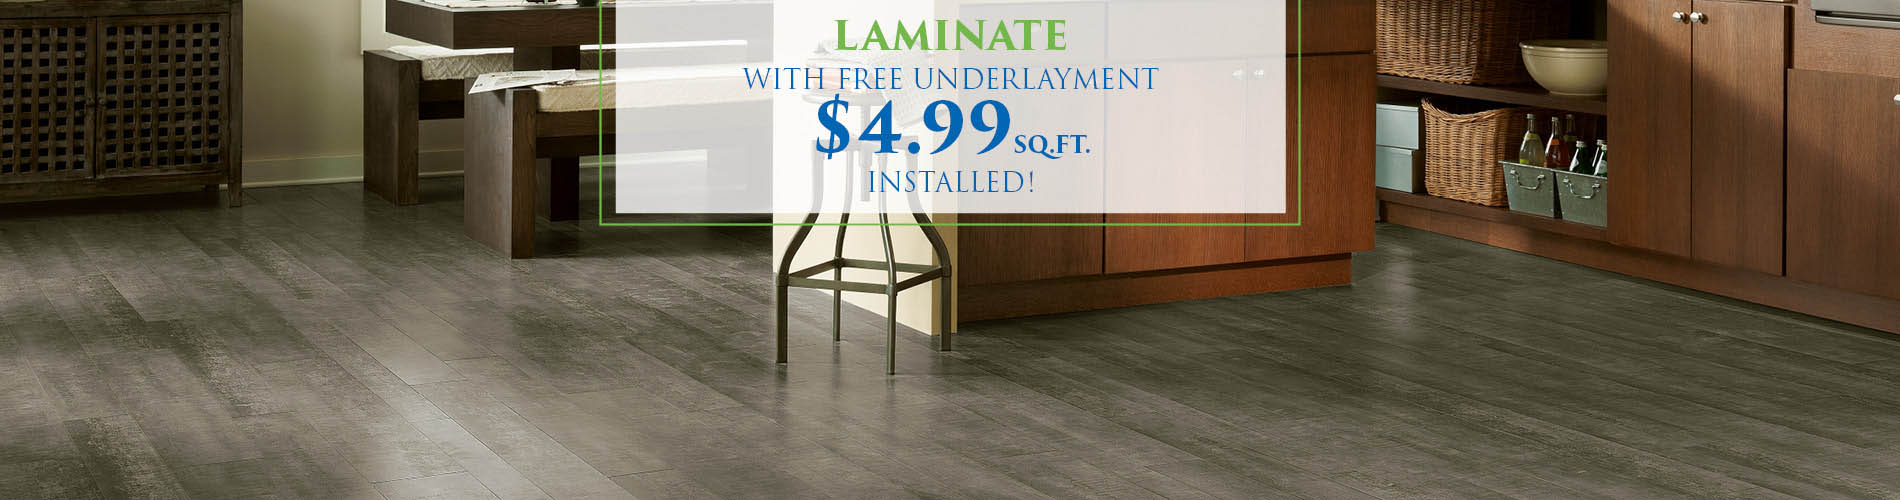 Laminate with free underlayment $4.99 sq.ft. installed!